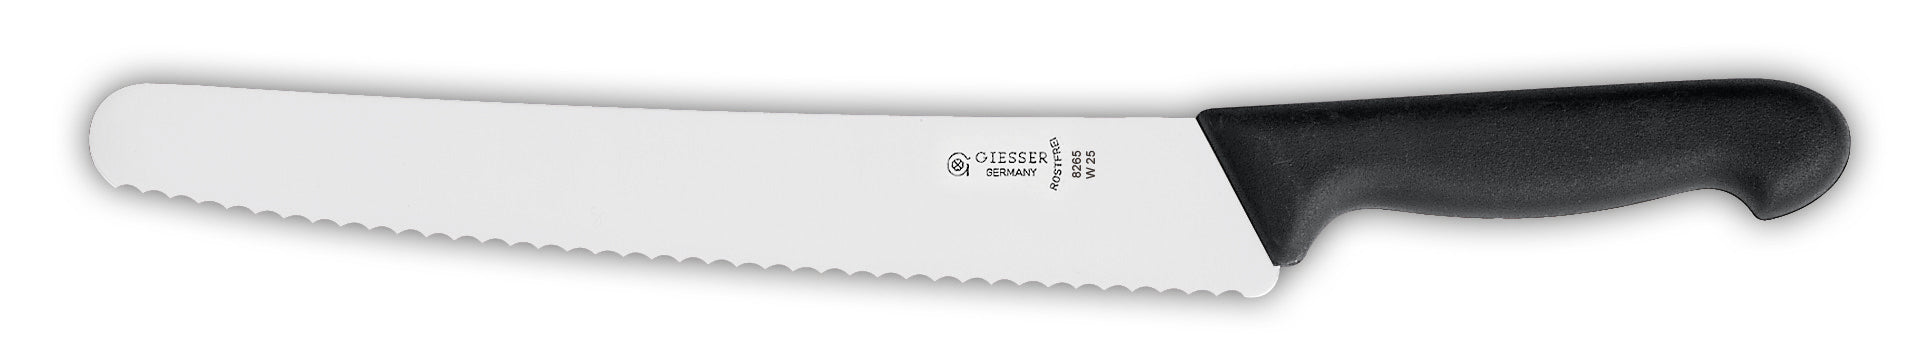 "Giesser Curved Pastry Knife 9 3/4"" Serr."